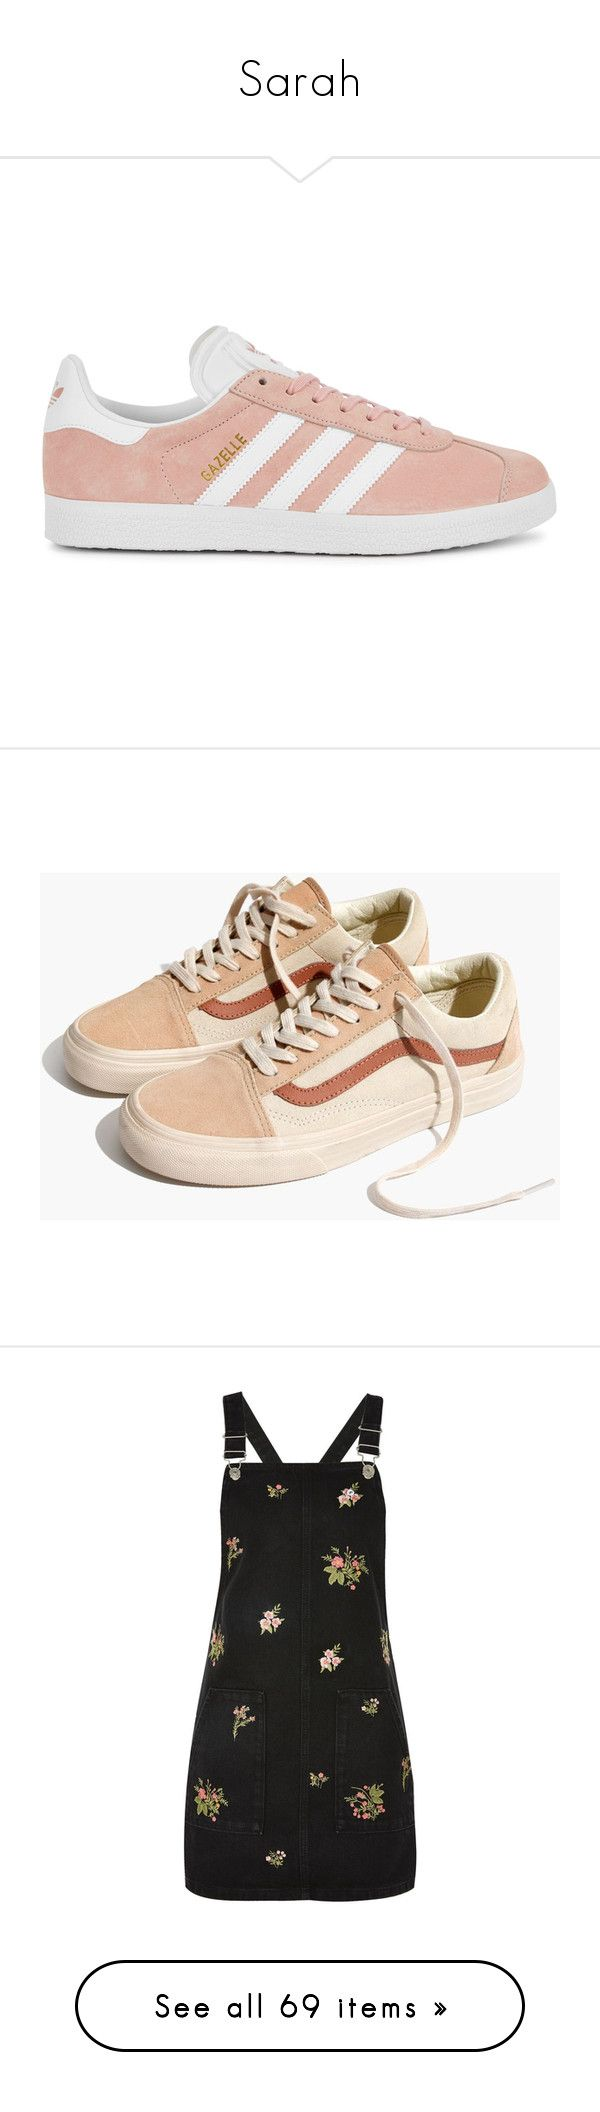 """""""Sarah"""" by sparkles-and-salamanders ❤ liked on Polyvore featuring shoes, sneakers, suede sneakers, round cap, adidas originals trainers, lace up sneakers, light pink shoes, camel mix, color block shoes and color block sneakers"""